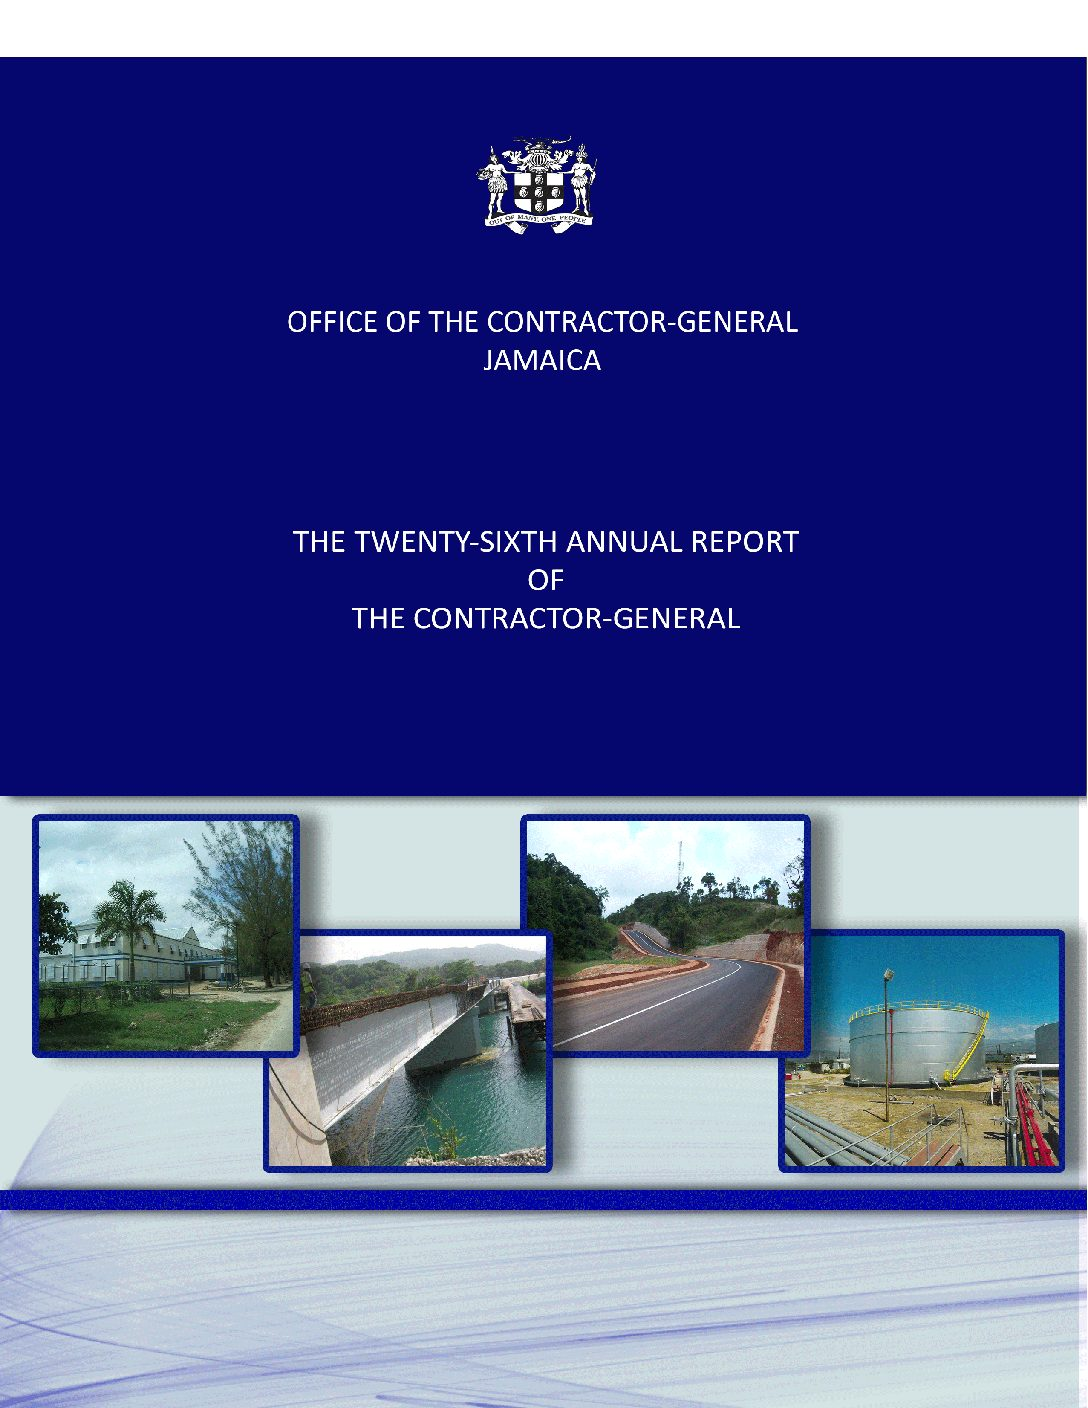 Office of the Contractor General Annual Report 2012